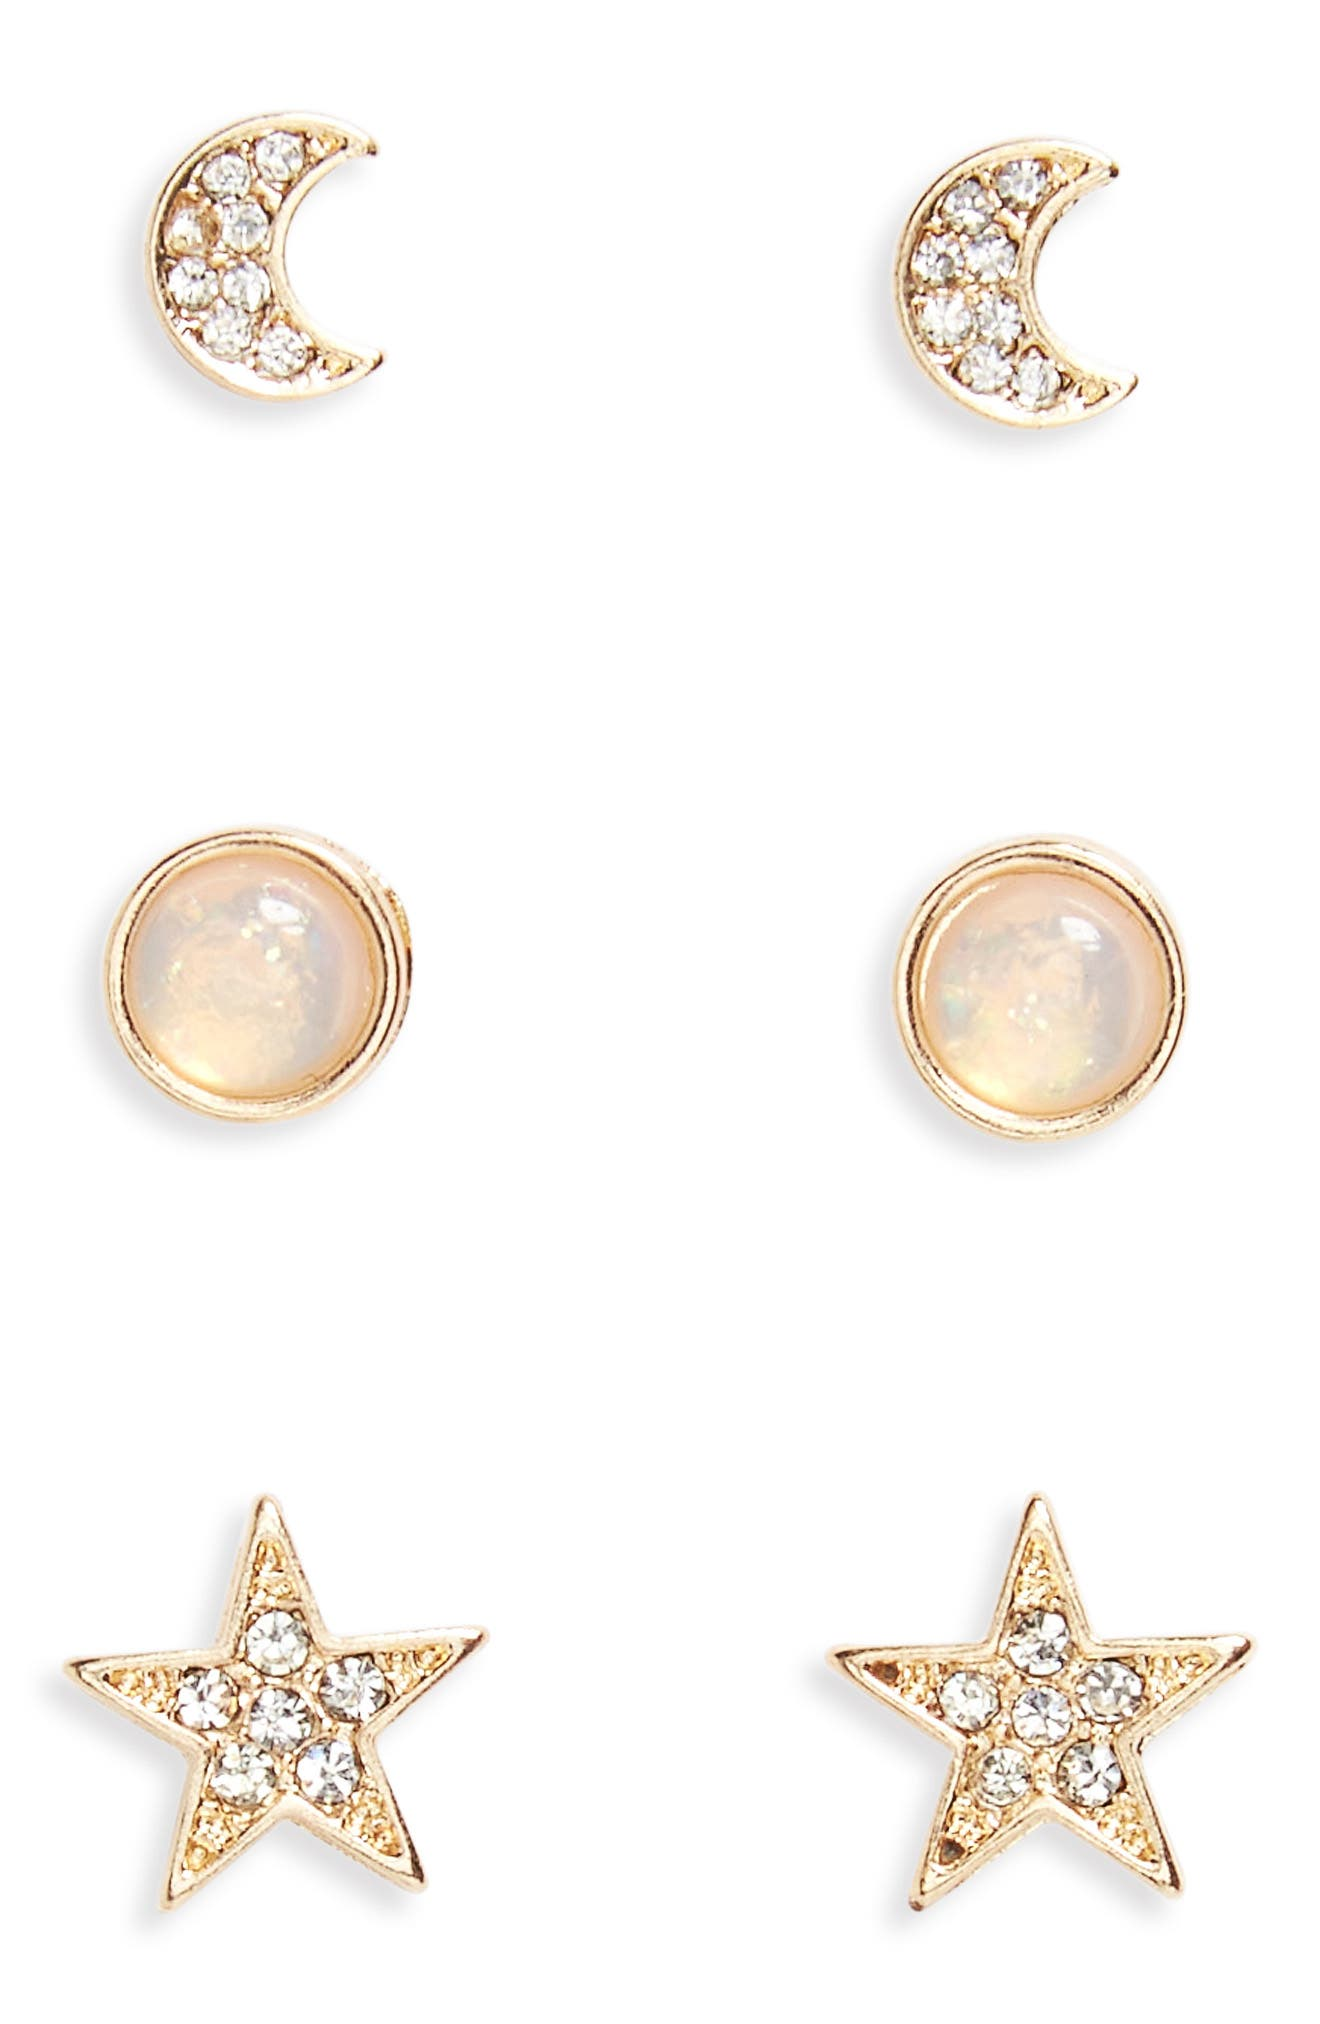 Moon, Star & Faux Opal 3-Pack Earrings,                         Main,                         color, Gold